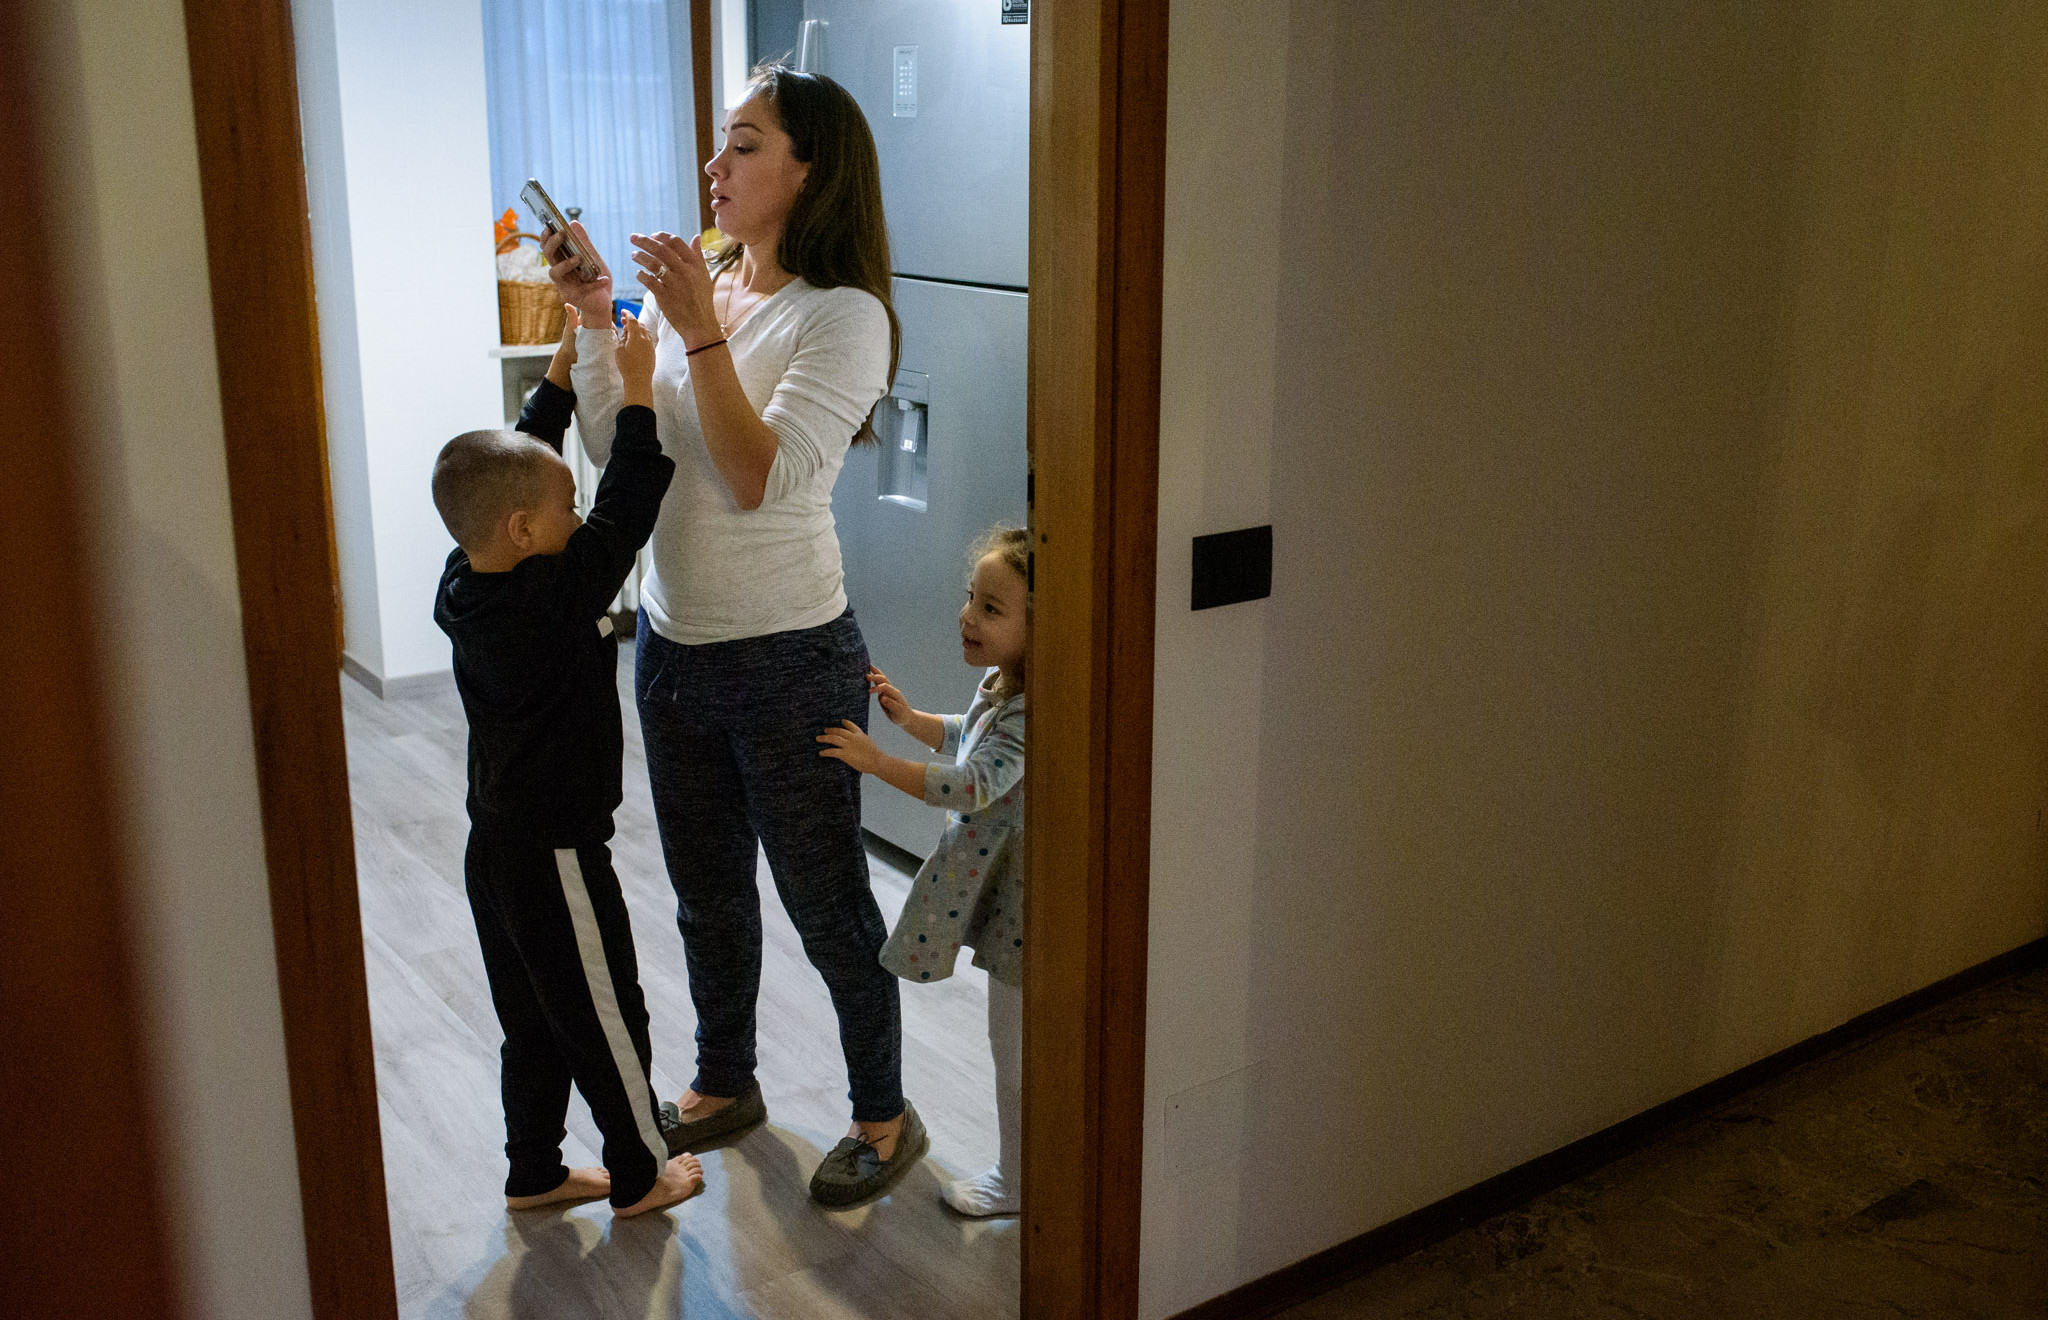 mom tries to focus on her phone while kids hang on her